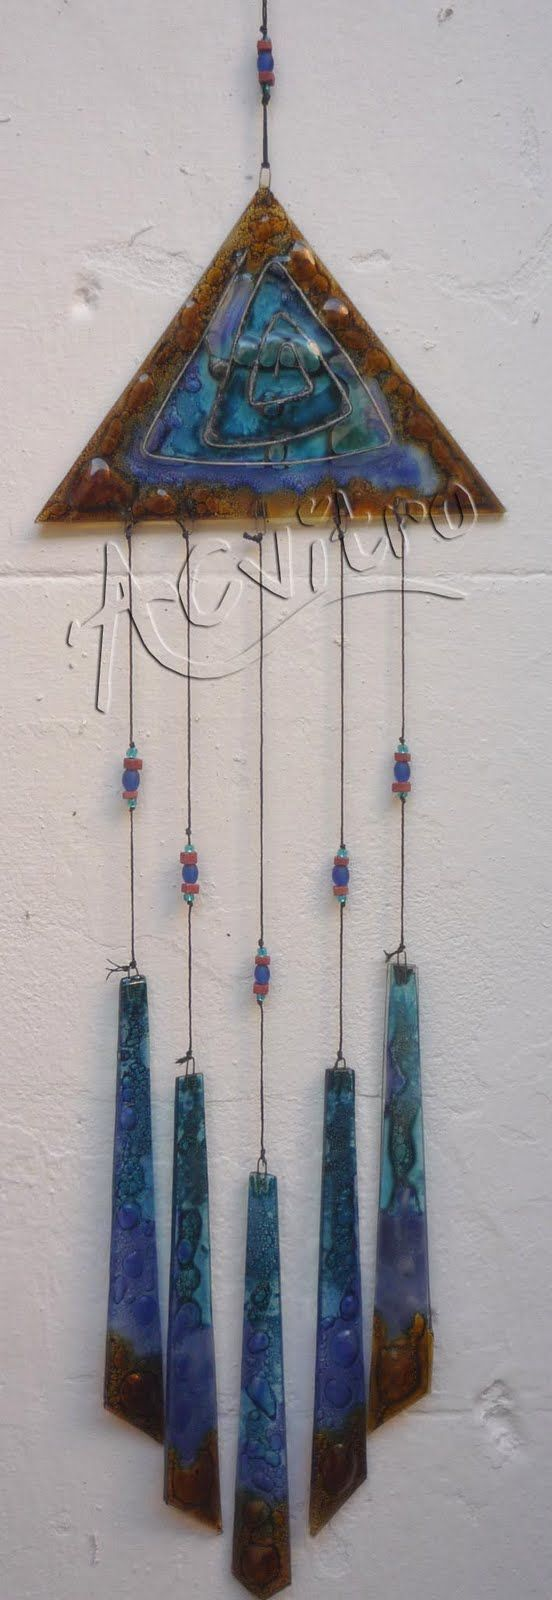 blue and brown glass triangle wind chime